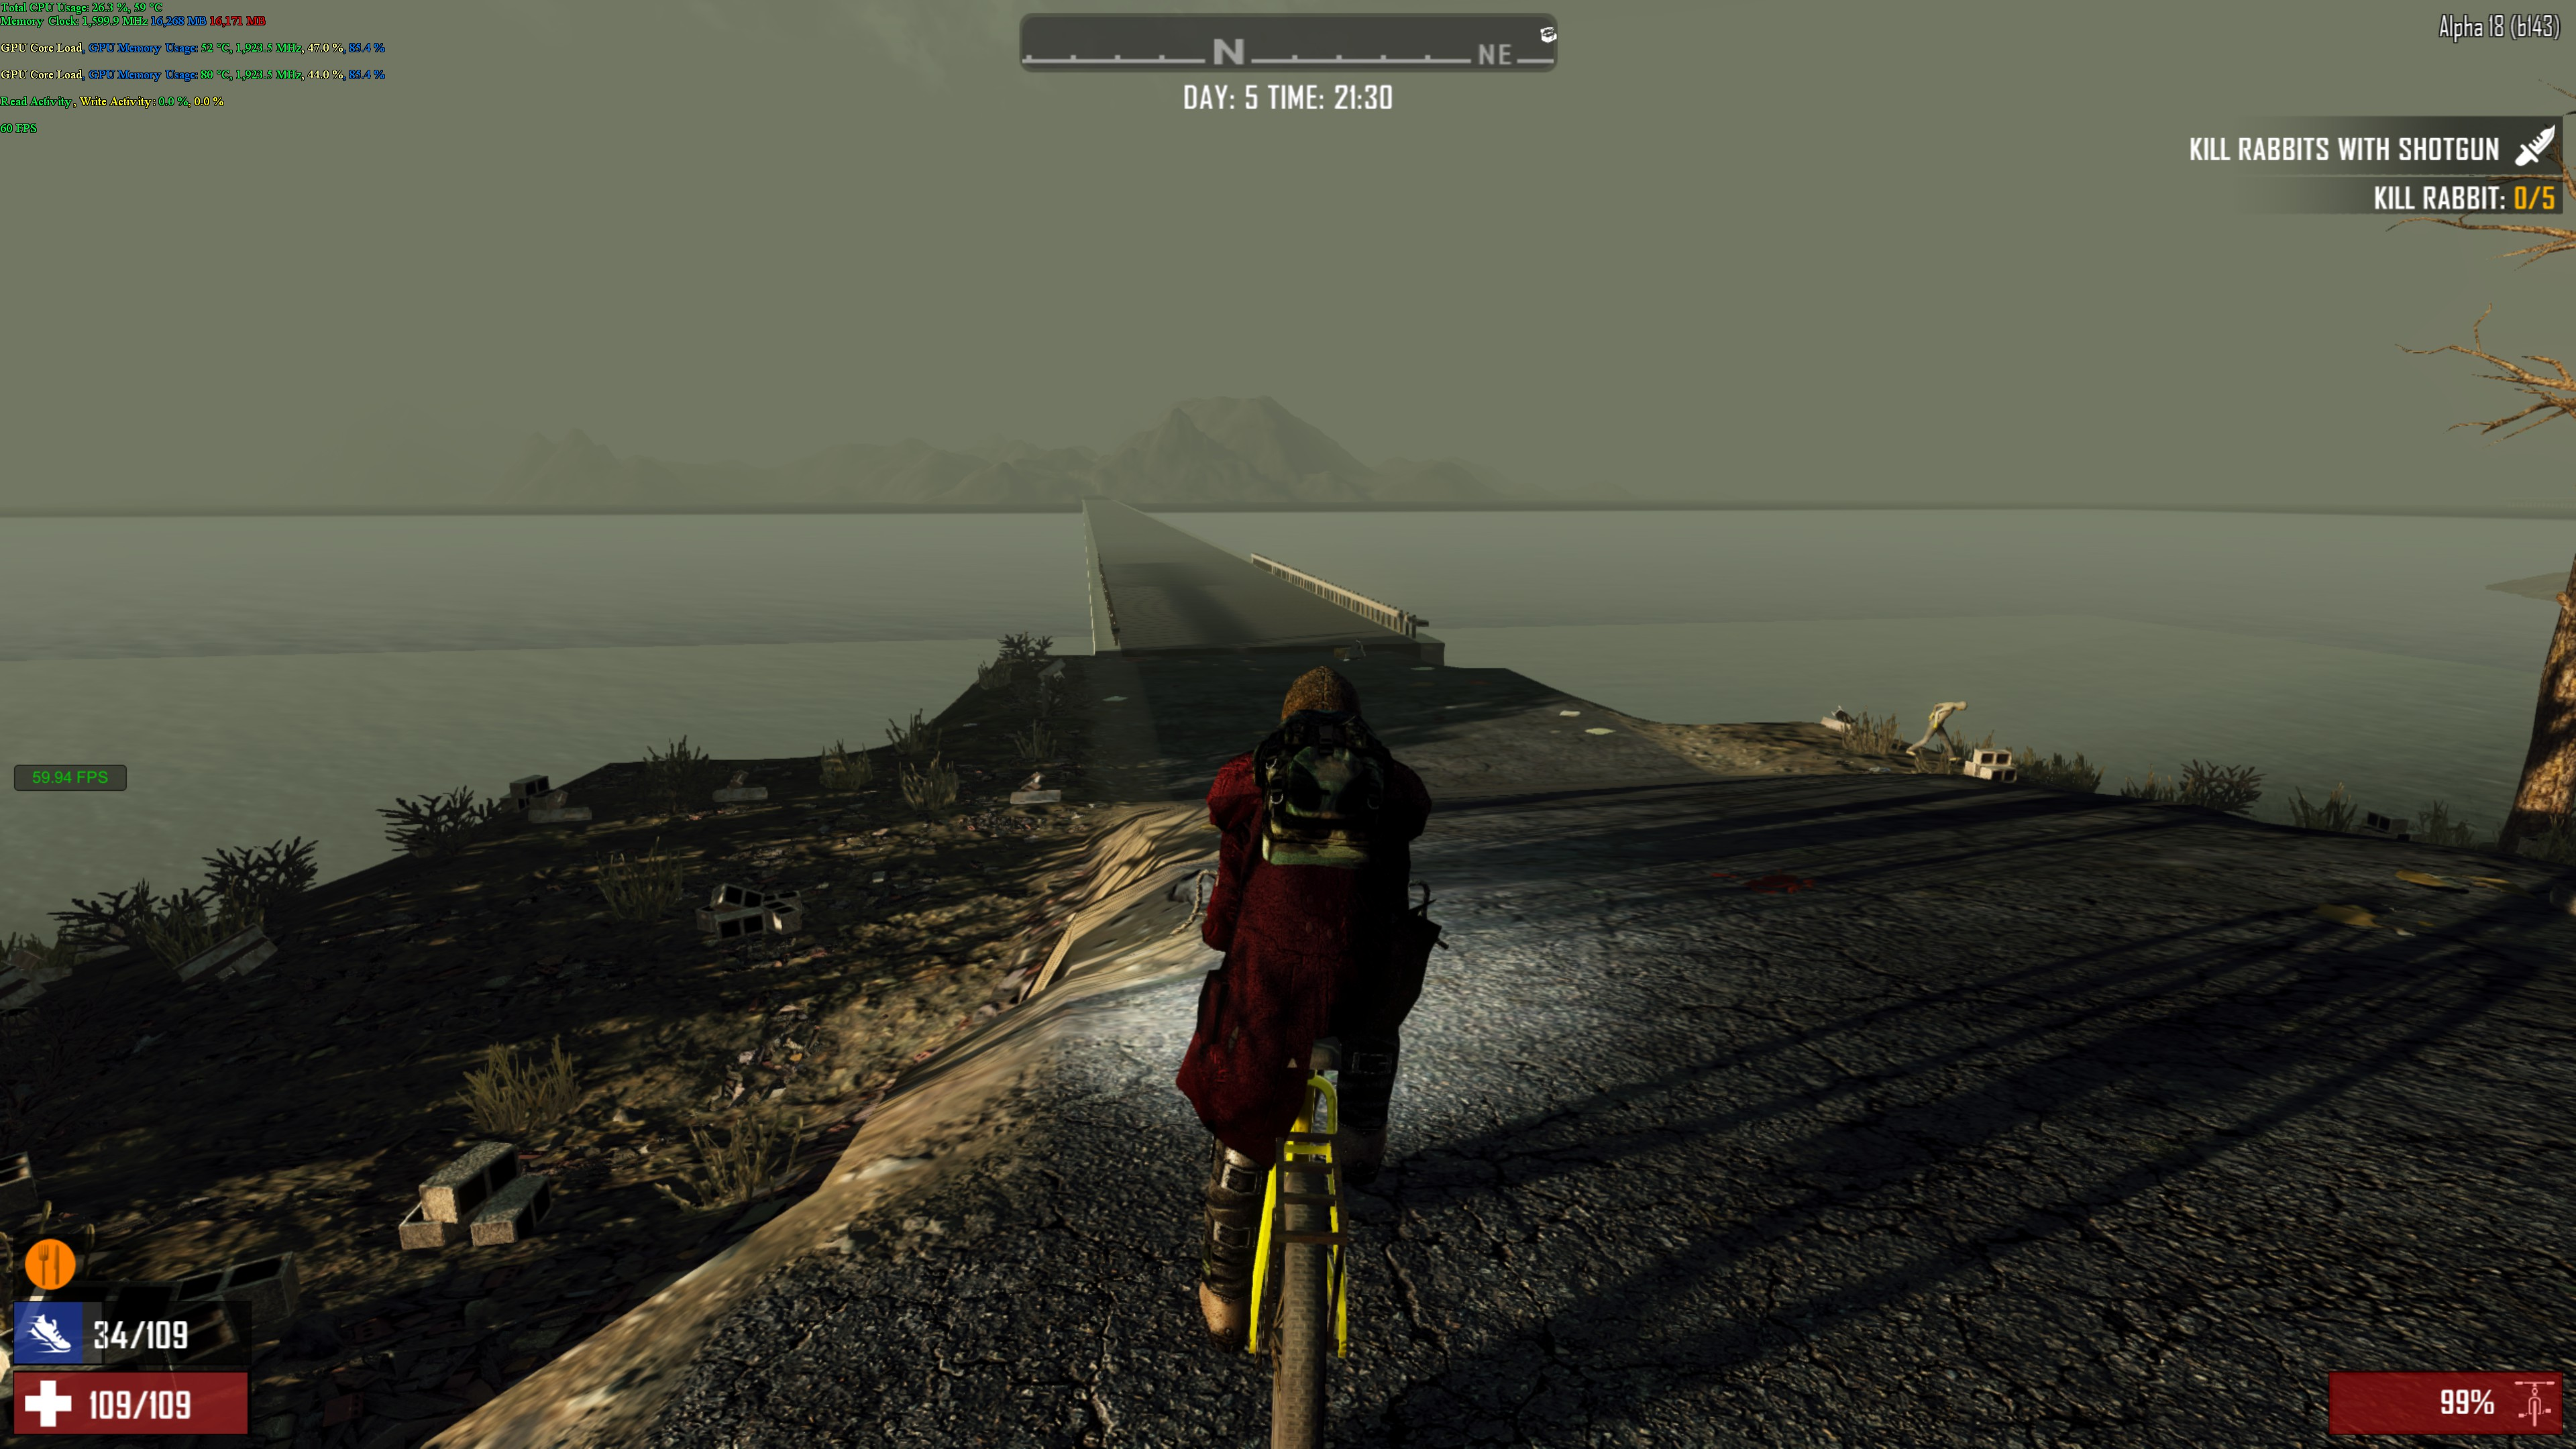 Harrys 16k Pregenerated Maps At 7 Days To Die Nexus Mods And